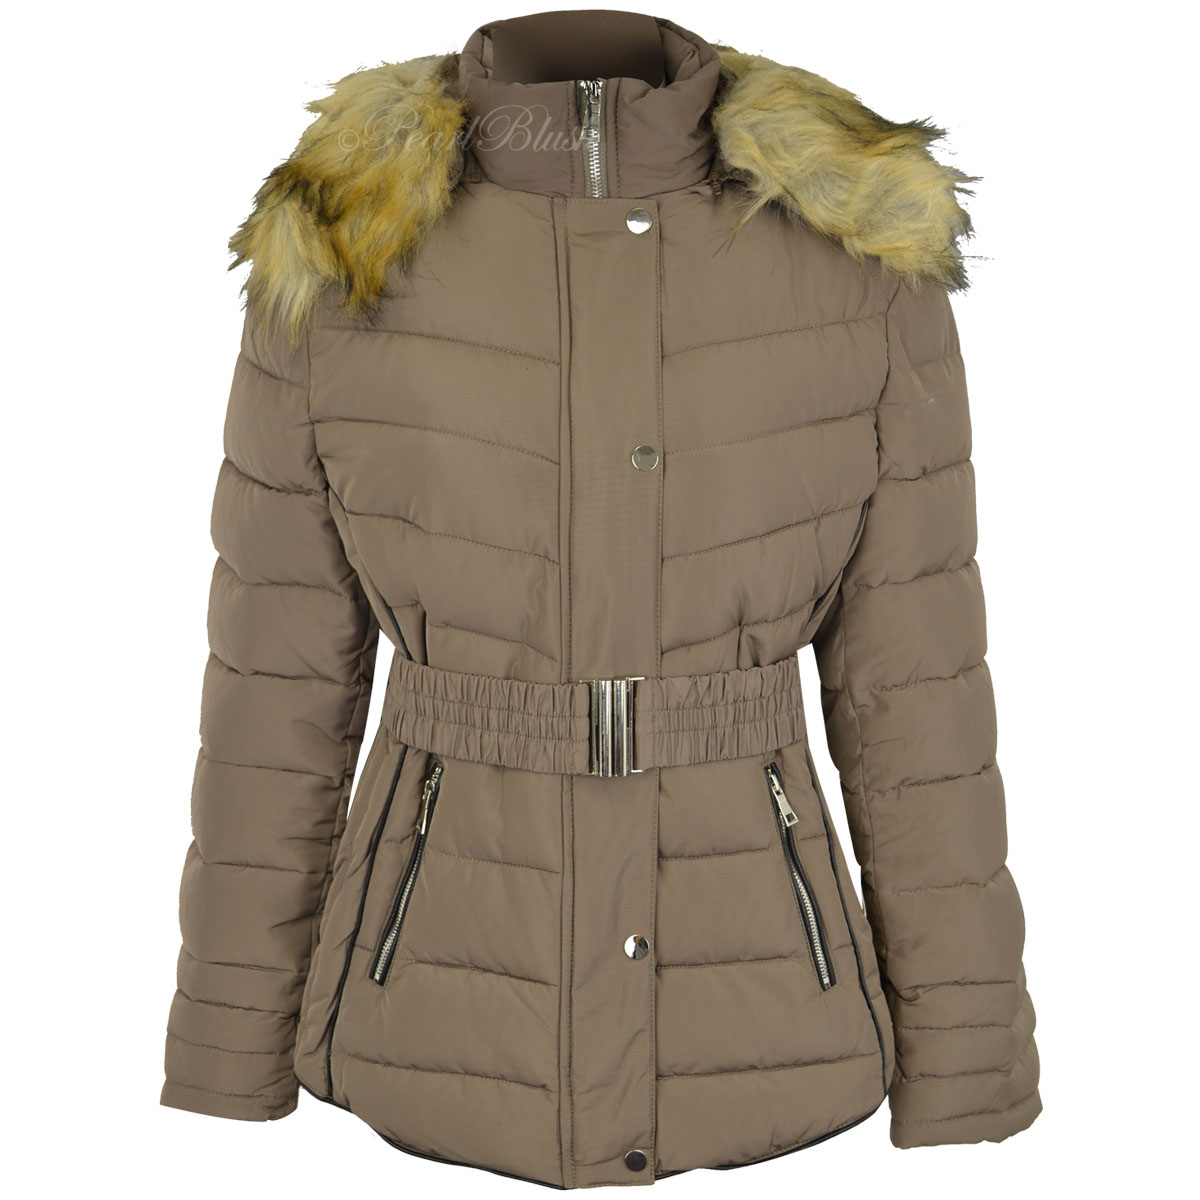 Keep warm in women's plus size coats from Kohl's. Plus size jackets are ideal for any weather conditions. We offer various women's plus size jacket options, like plus size bomber jackets, plus size denim jackets, and plus size anorak jackets.